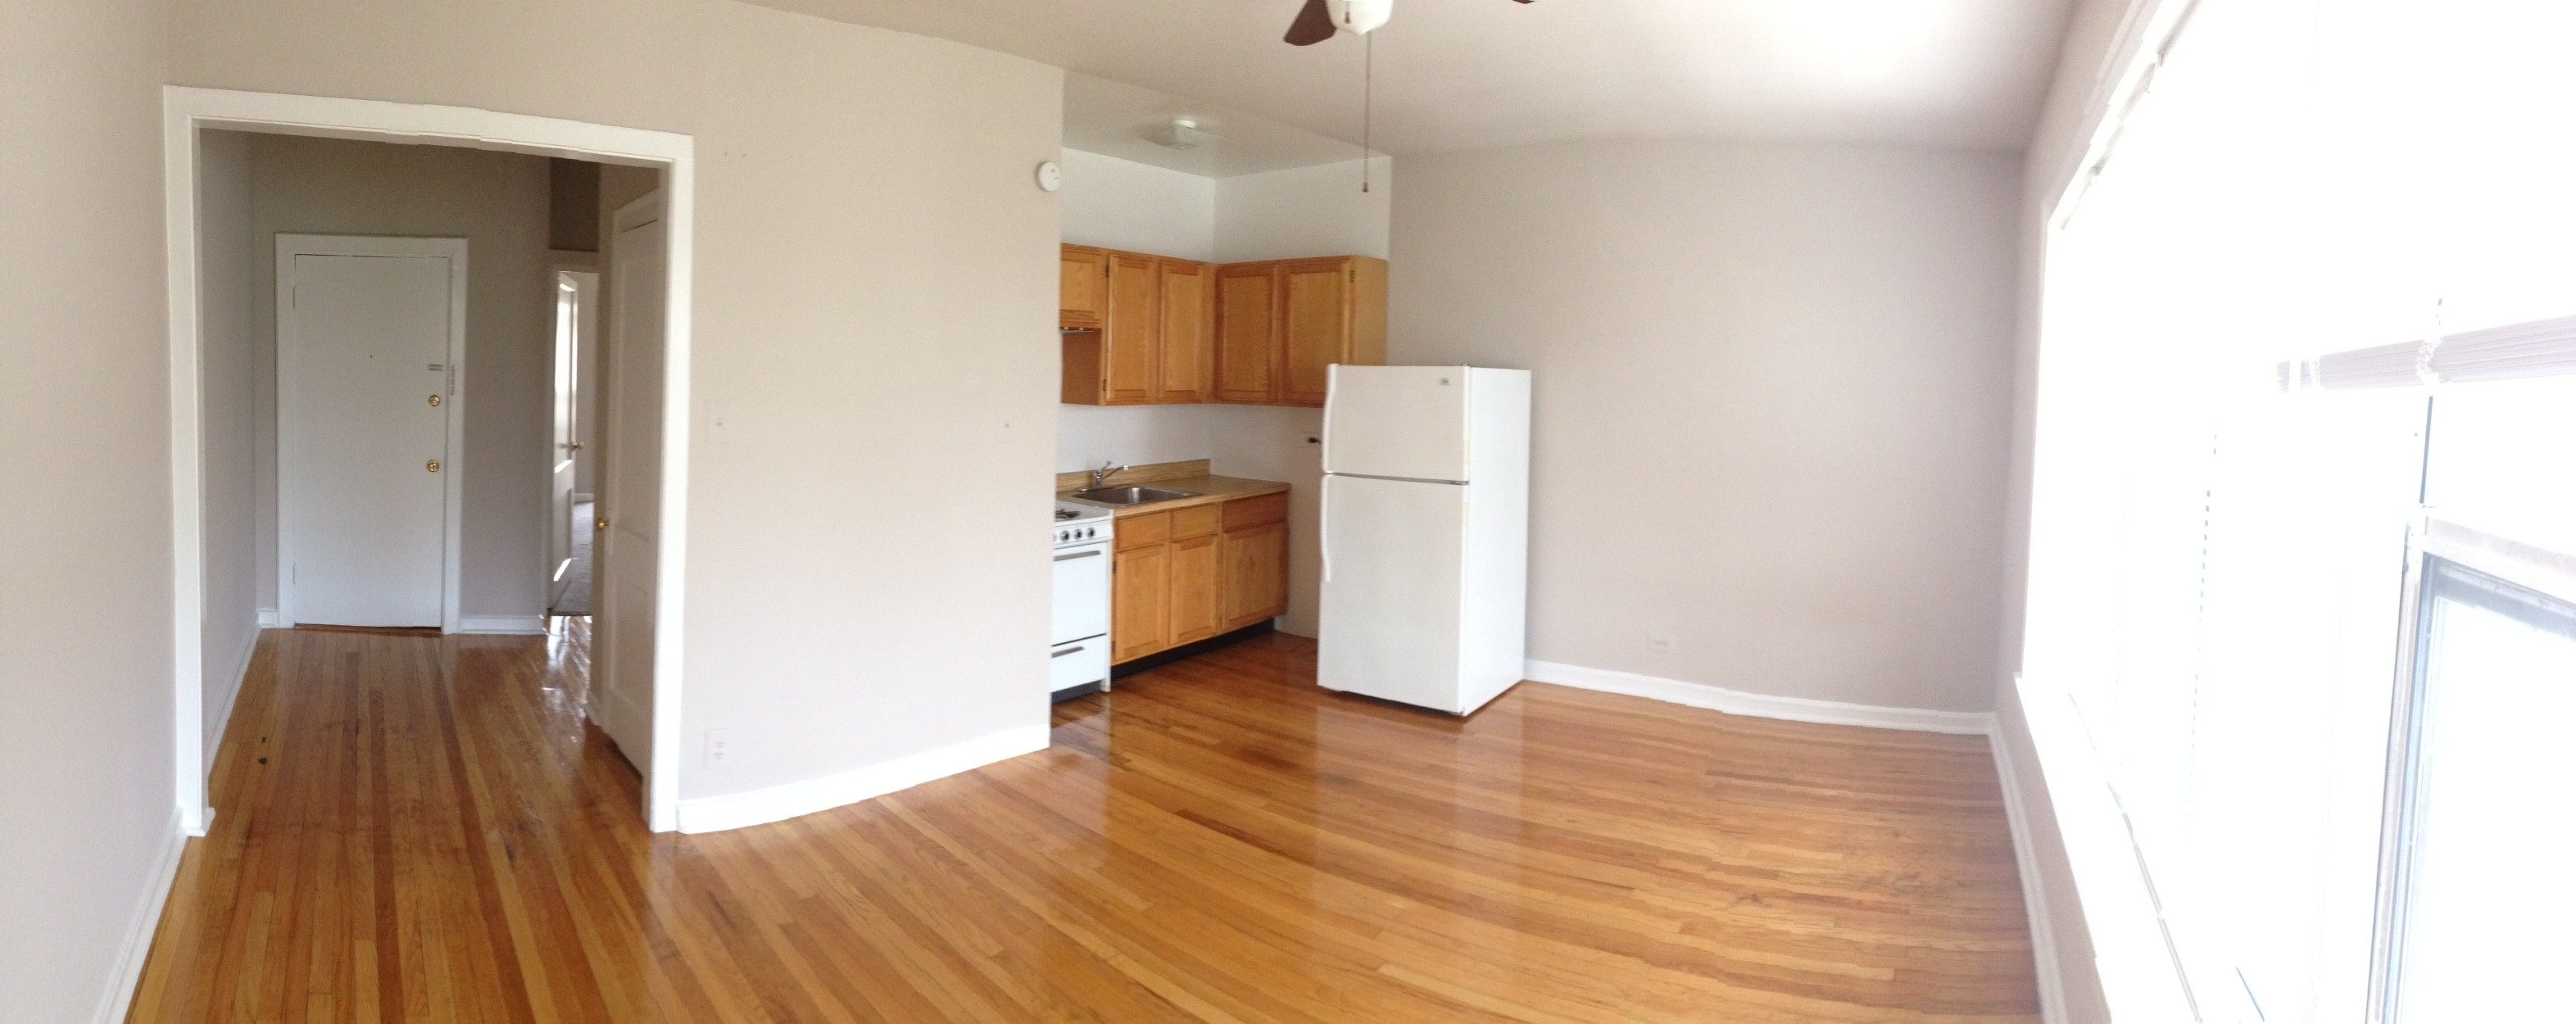 5668 North Ridge Avenue J1 Chicago Il 60660 1 Bedroom Apartment For Rent For 825 Month Zumper